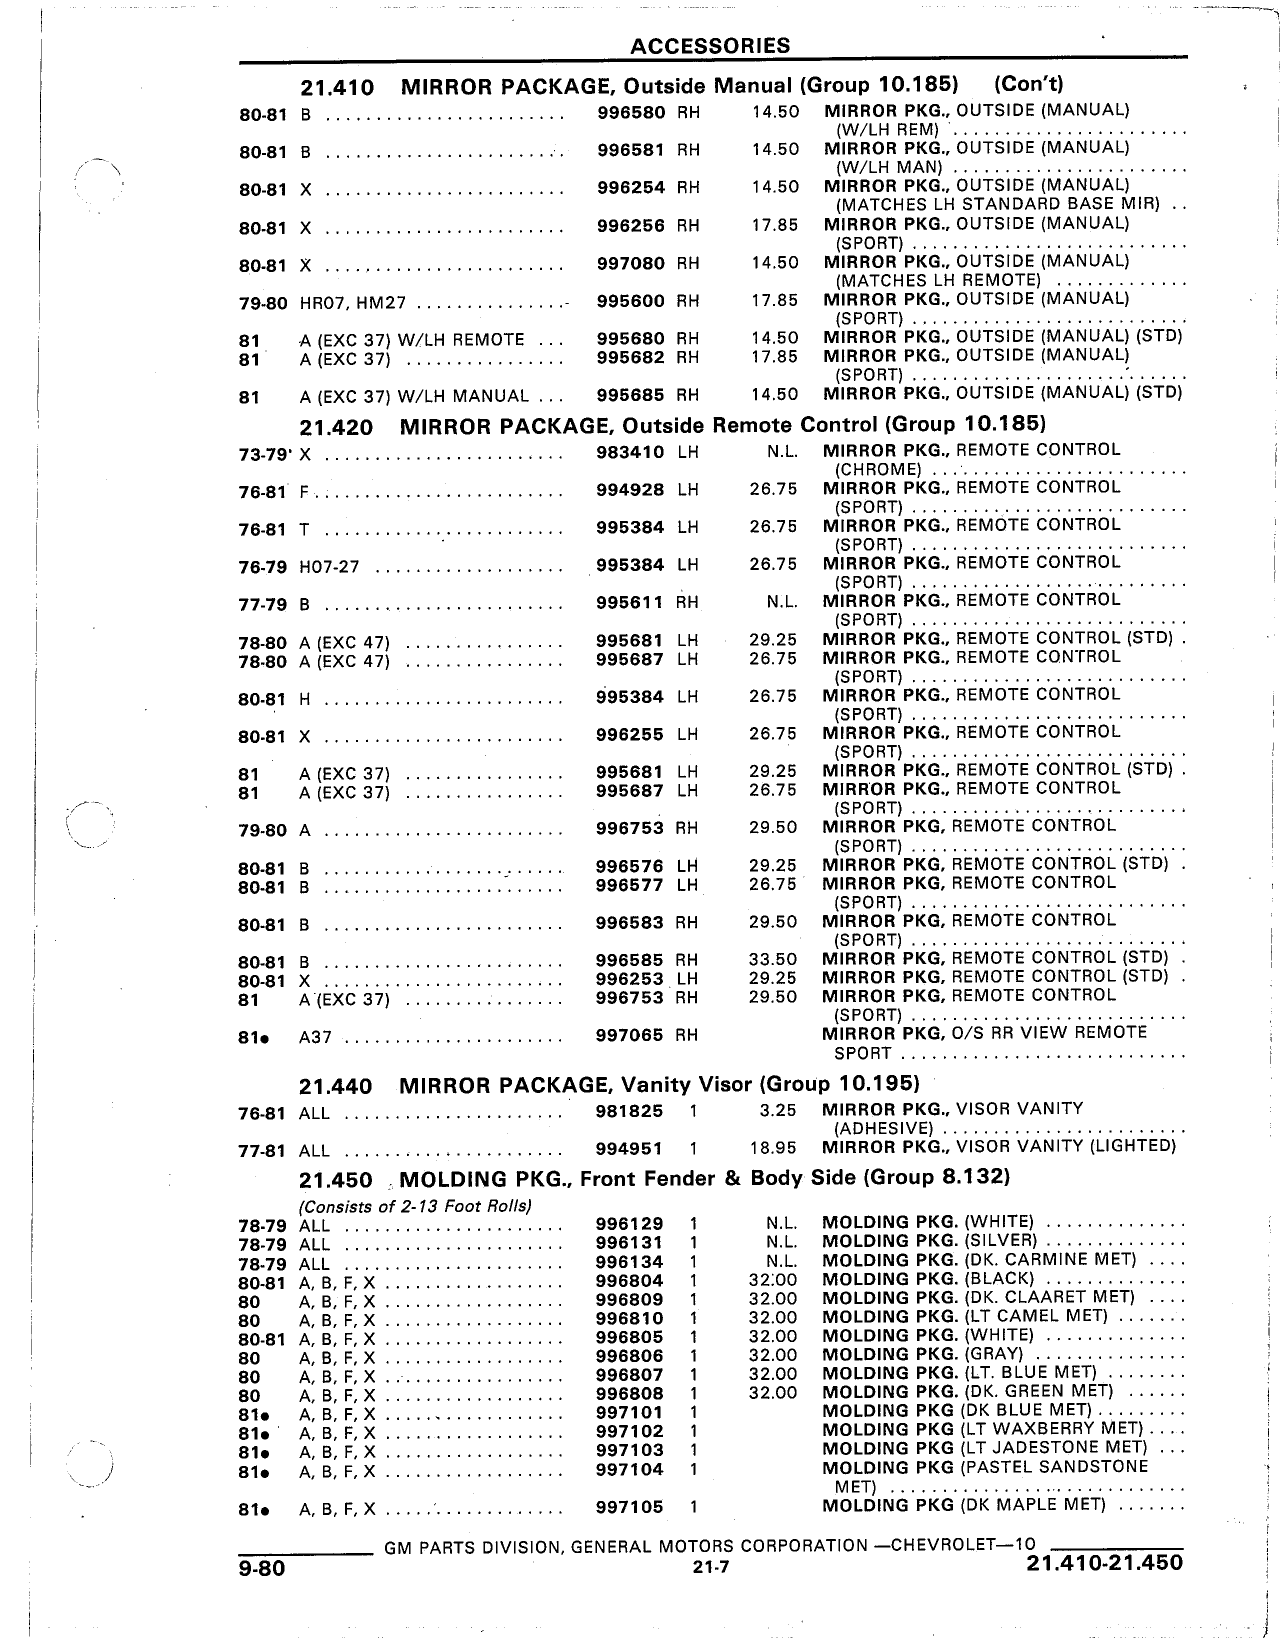 Parts Catalogue 10 September 1980